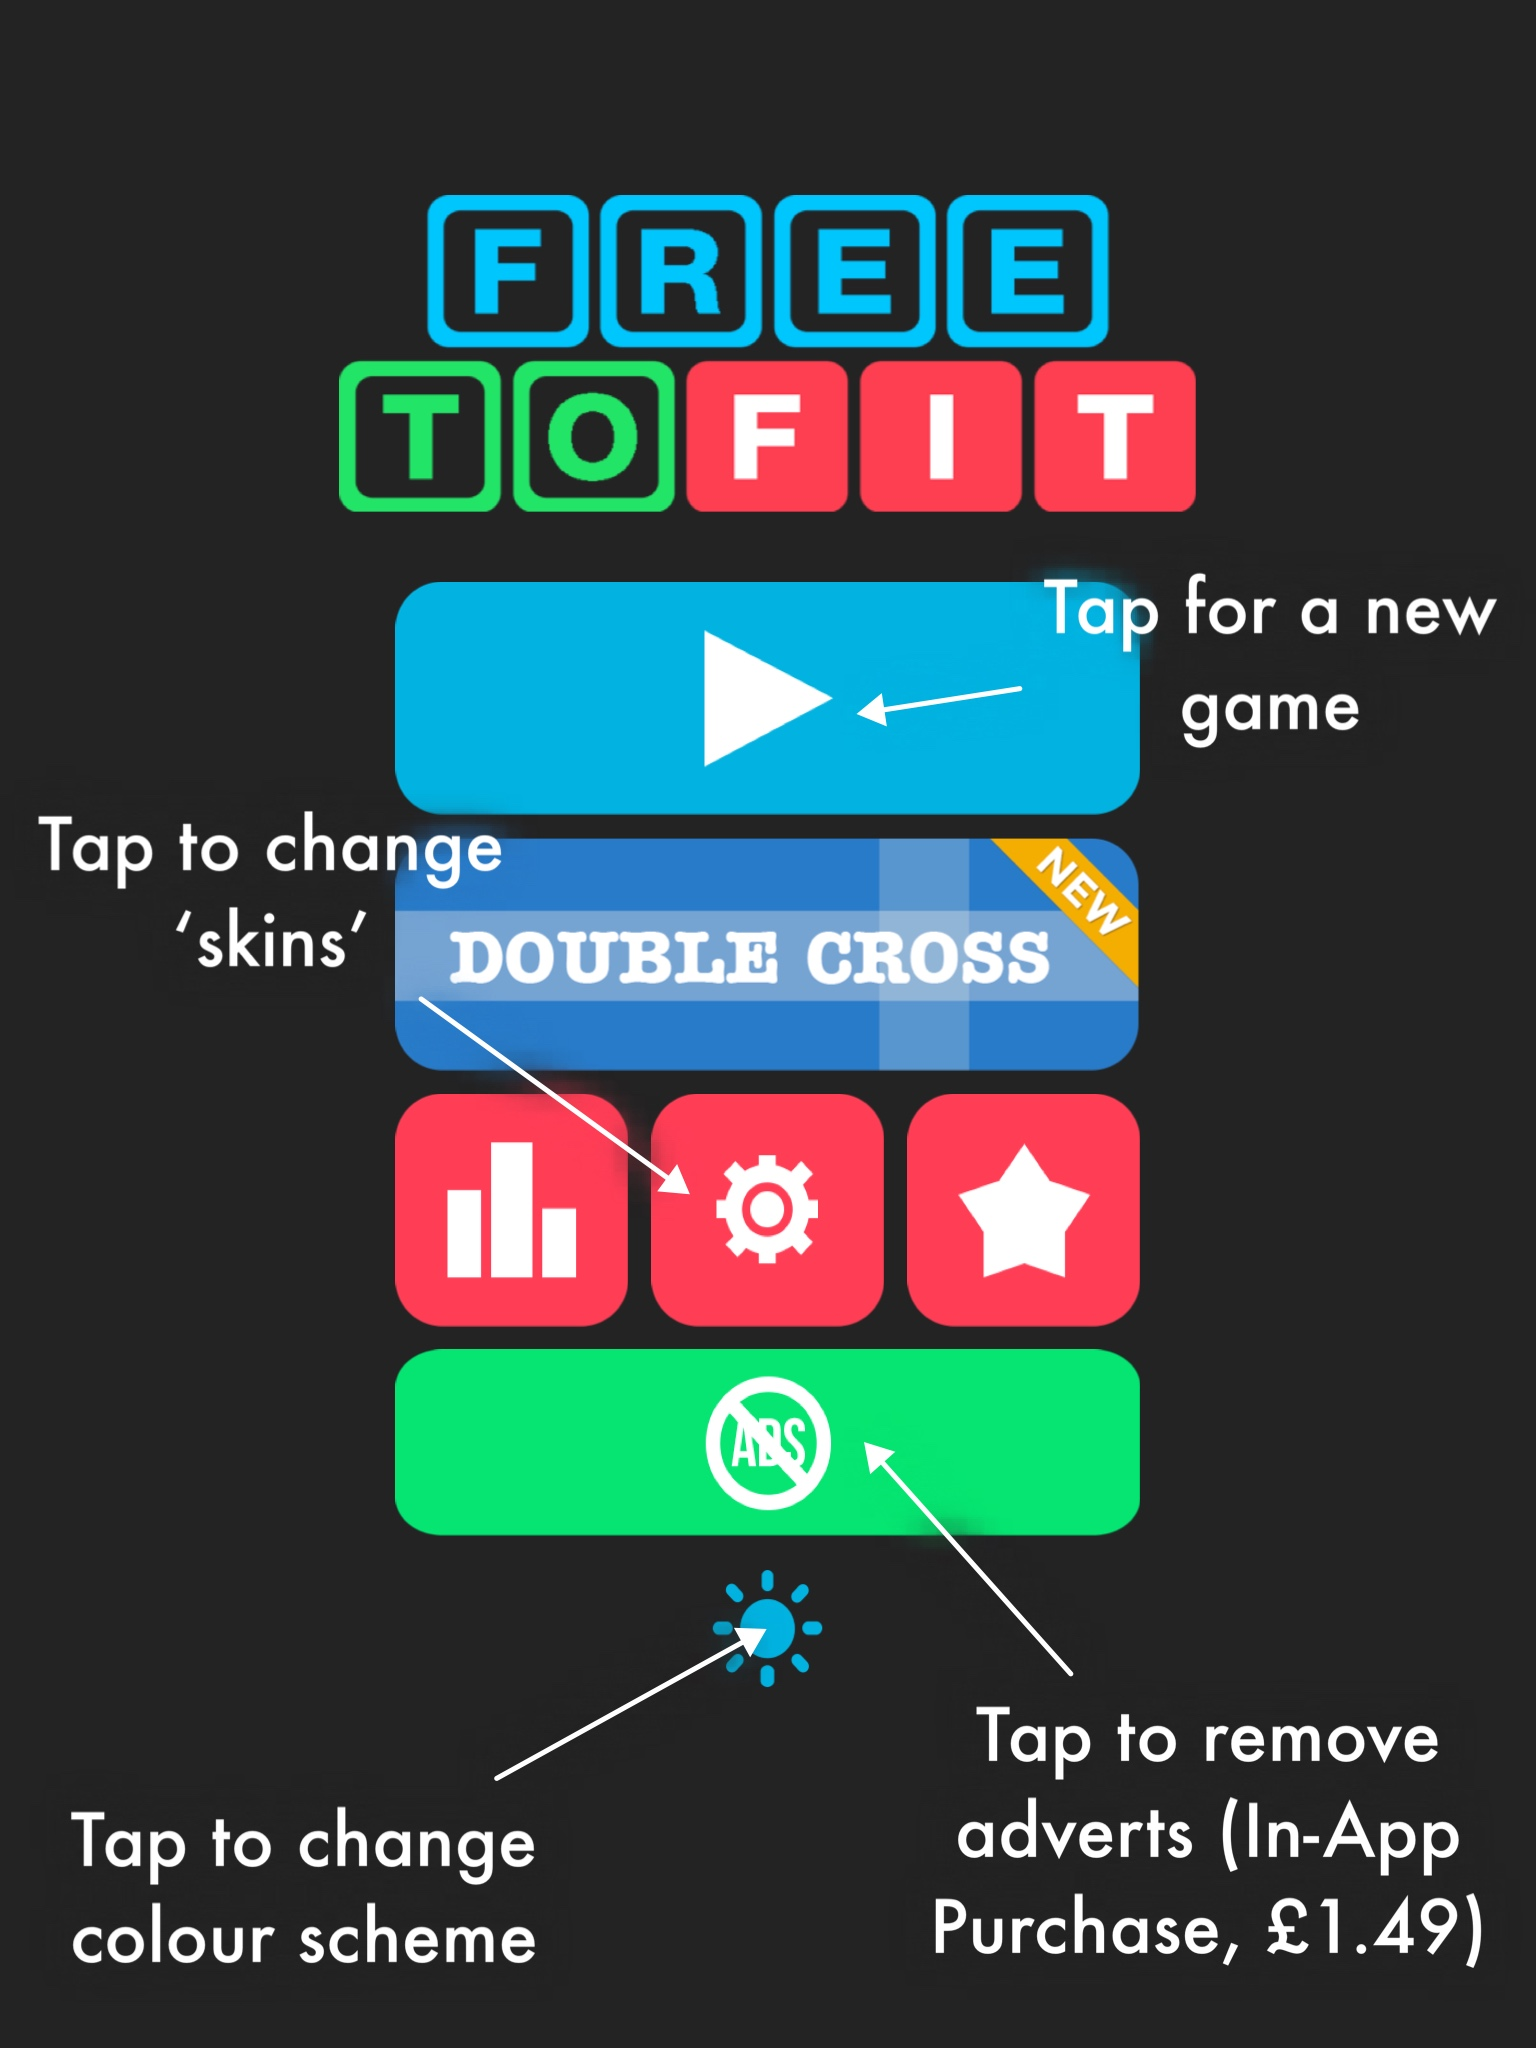 Free To Fit by Nguyen Quang Sang, recommended app for people living with dementia